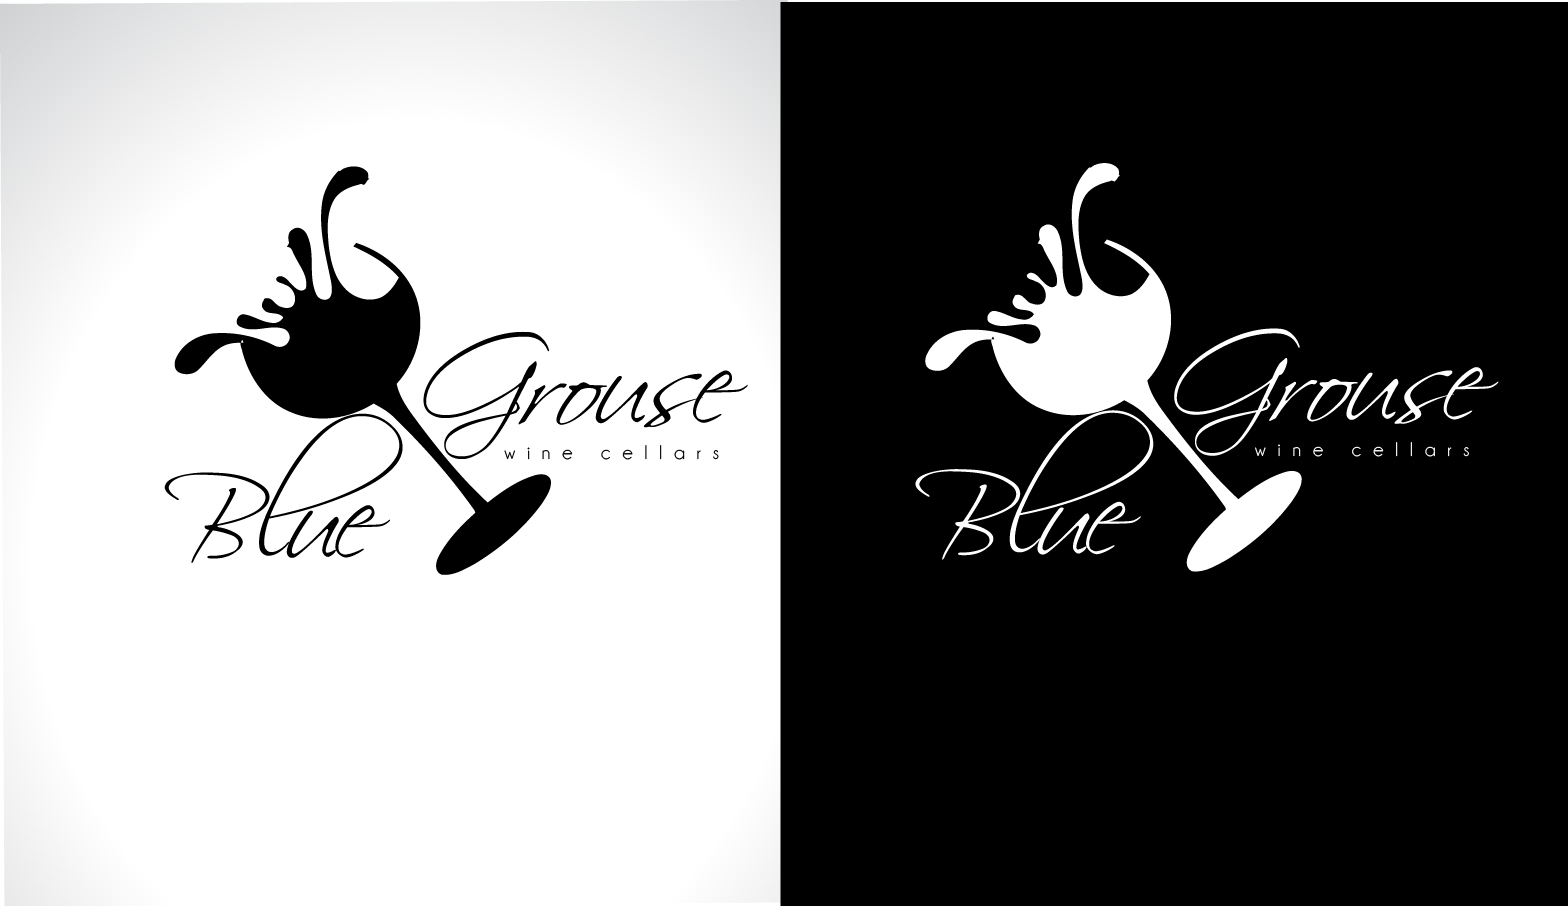 Logo Design by Darina Dimitrova - Entry No. 247 in the Logo Design Contest Creative Logo Design for Blue Grouse Wine Cellars.